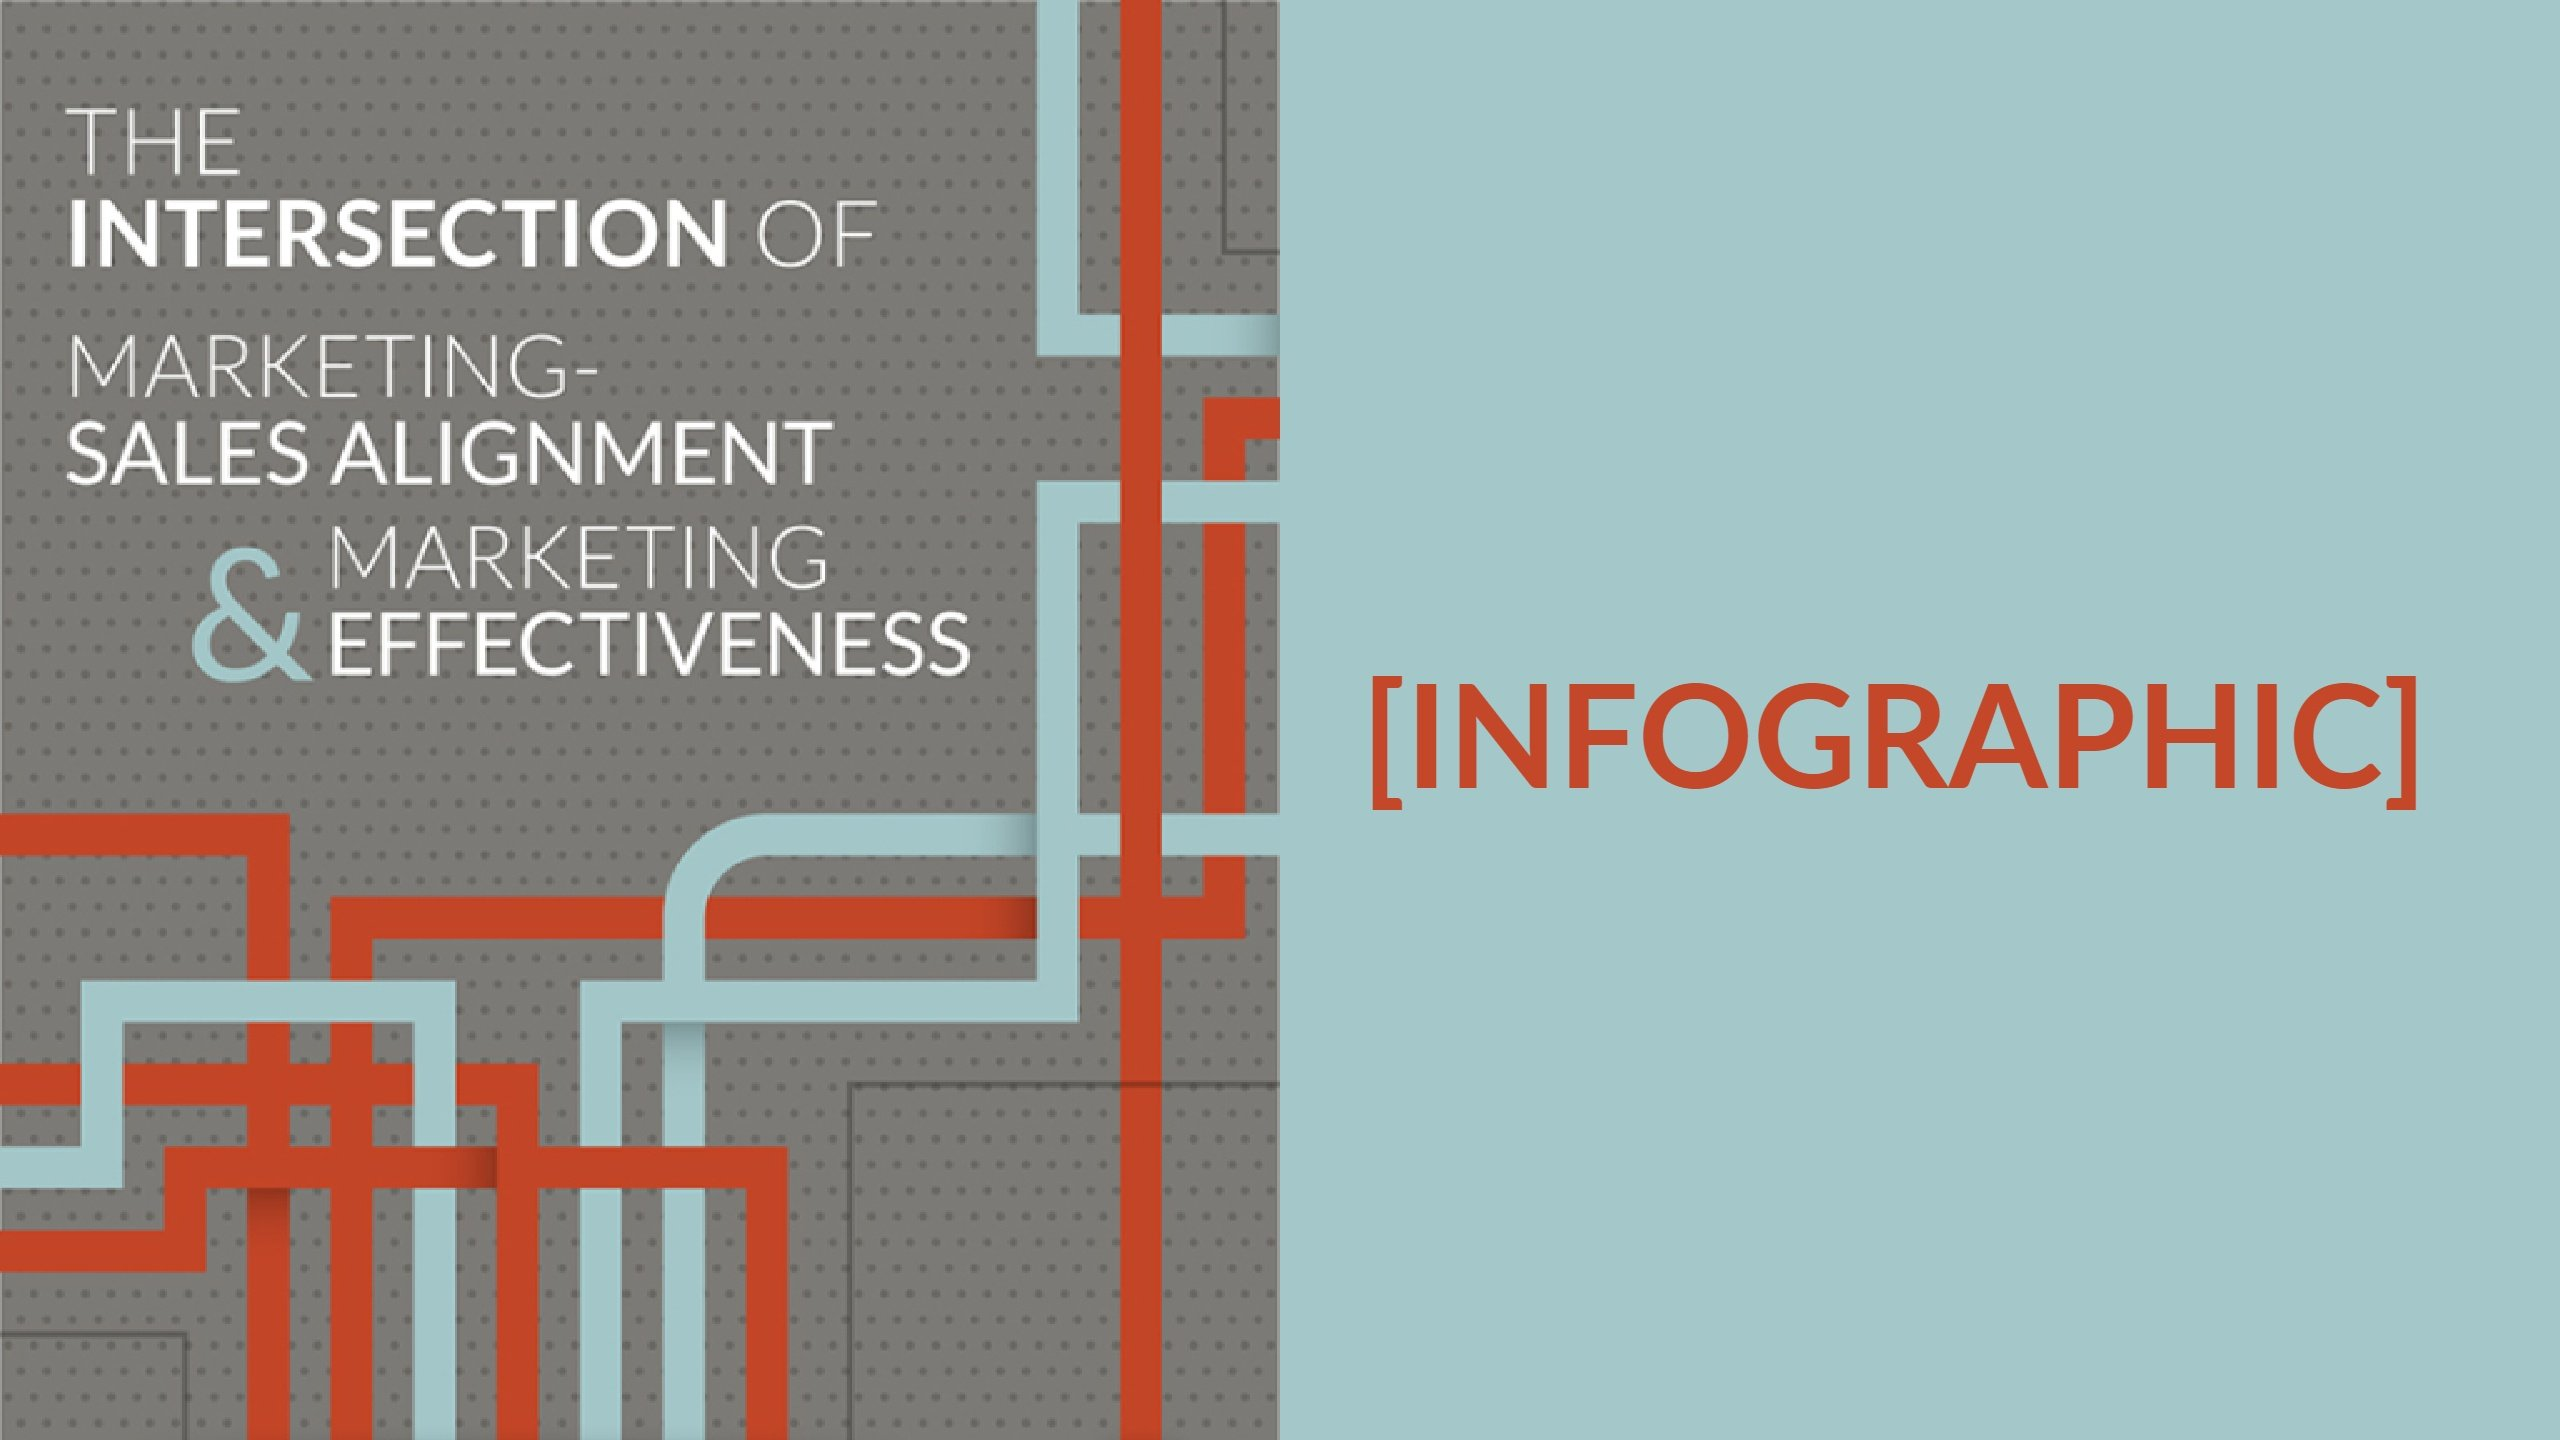 Where Departmental Alignment & Marketing Effectiveness Intersect (infographic)